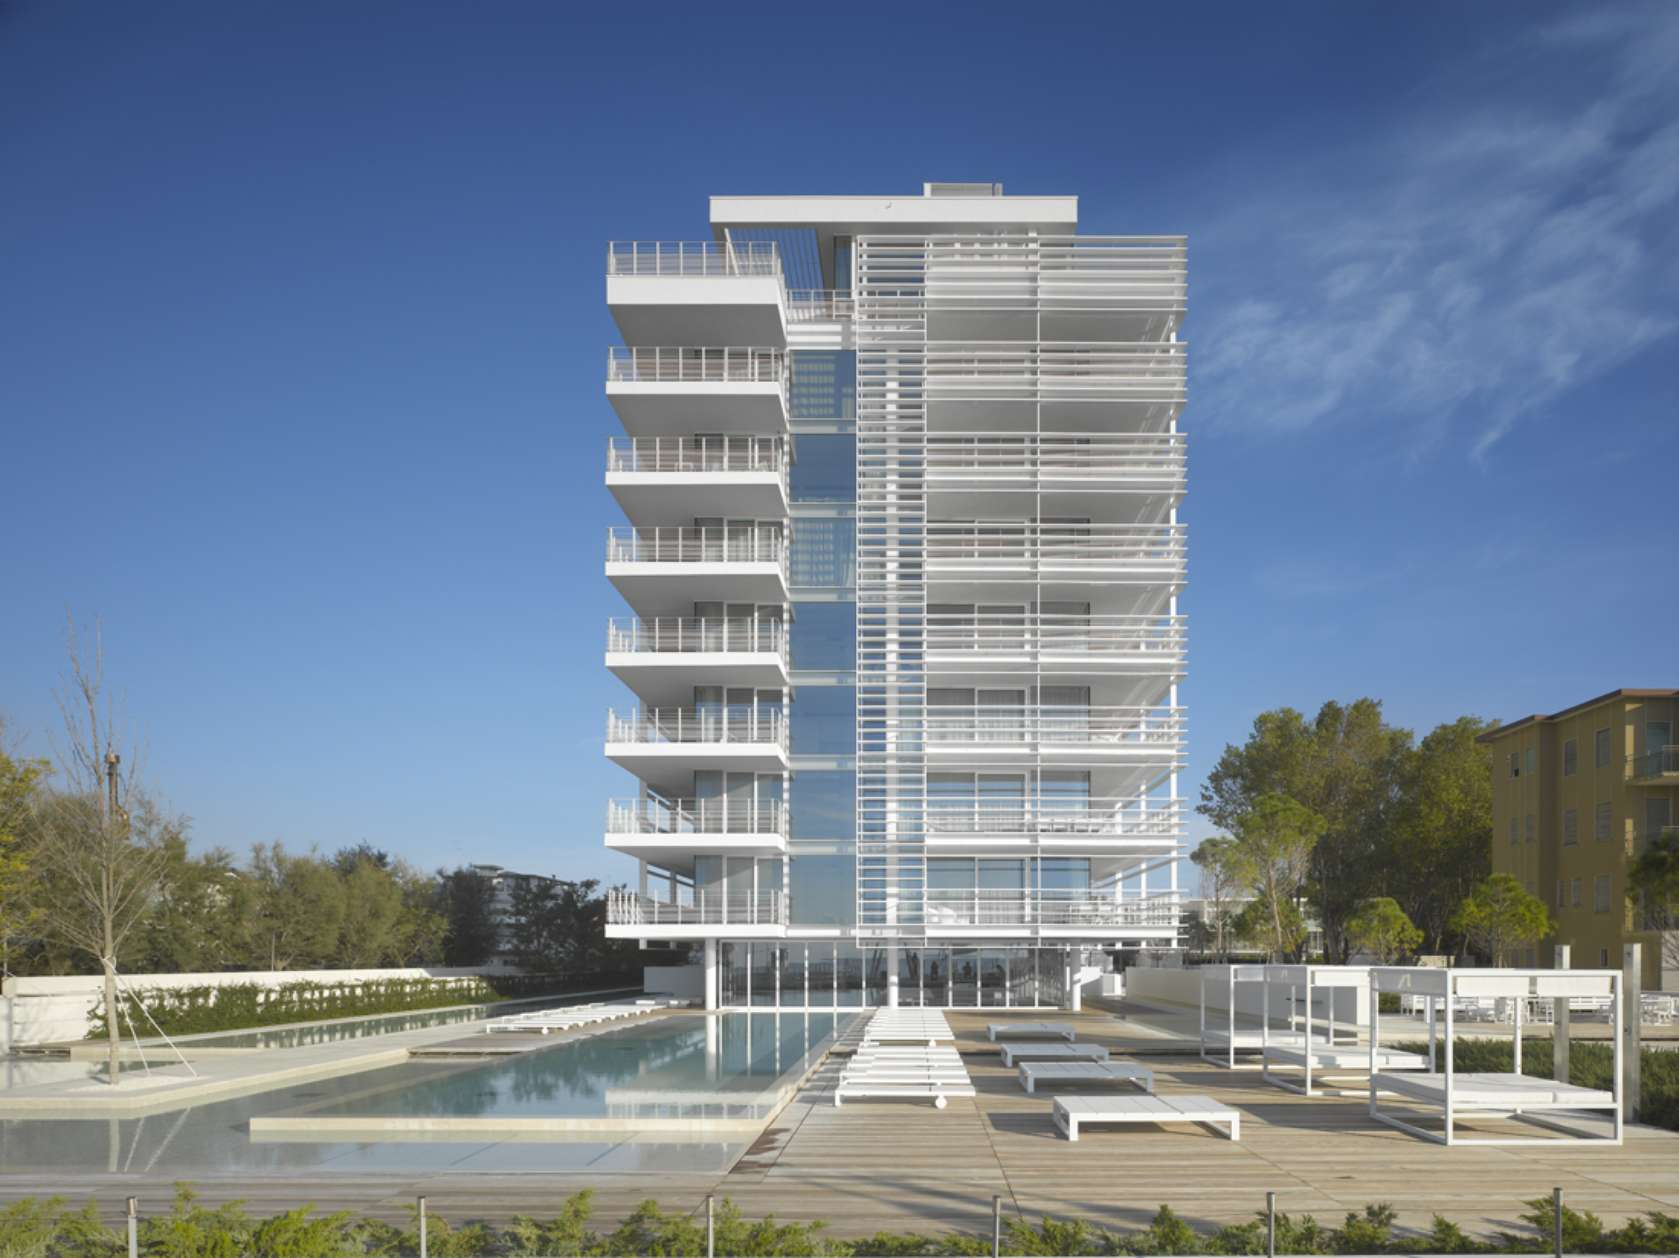 Architizer architects buildings and building products - Richard Meier Amp Partners Architects Architizer